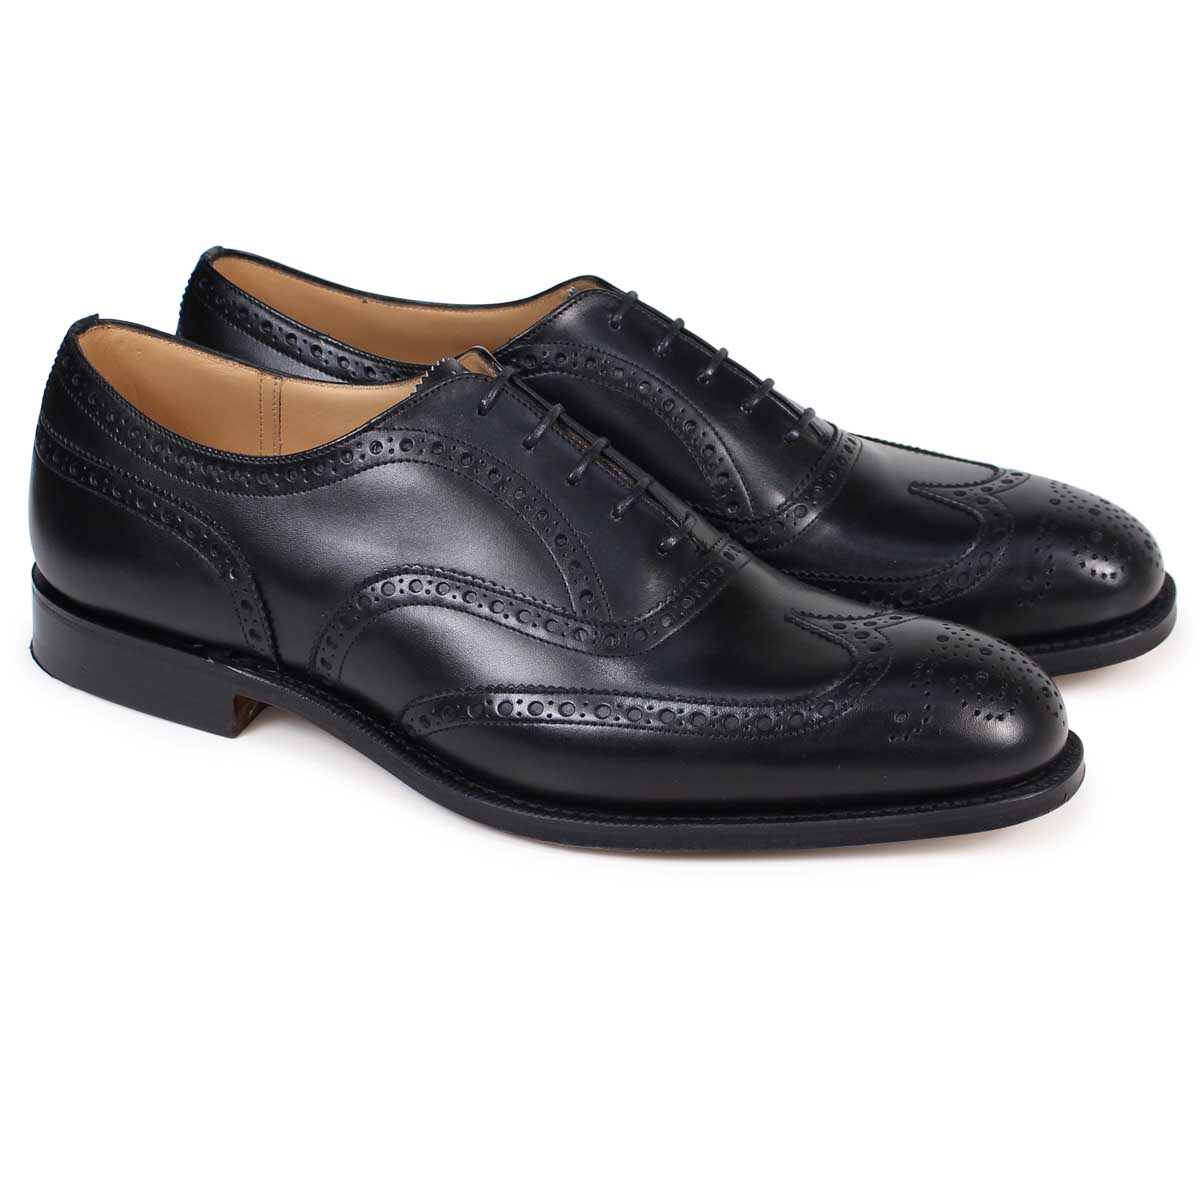 best service ead47 6b880 Church's CHETWYND church shoes Chet wind wing tip shoes men leather black  EEB007 [183]